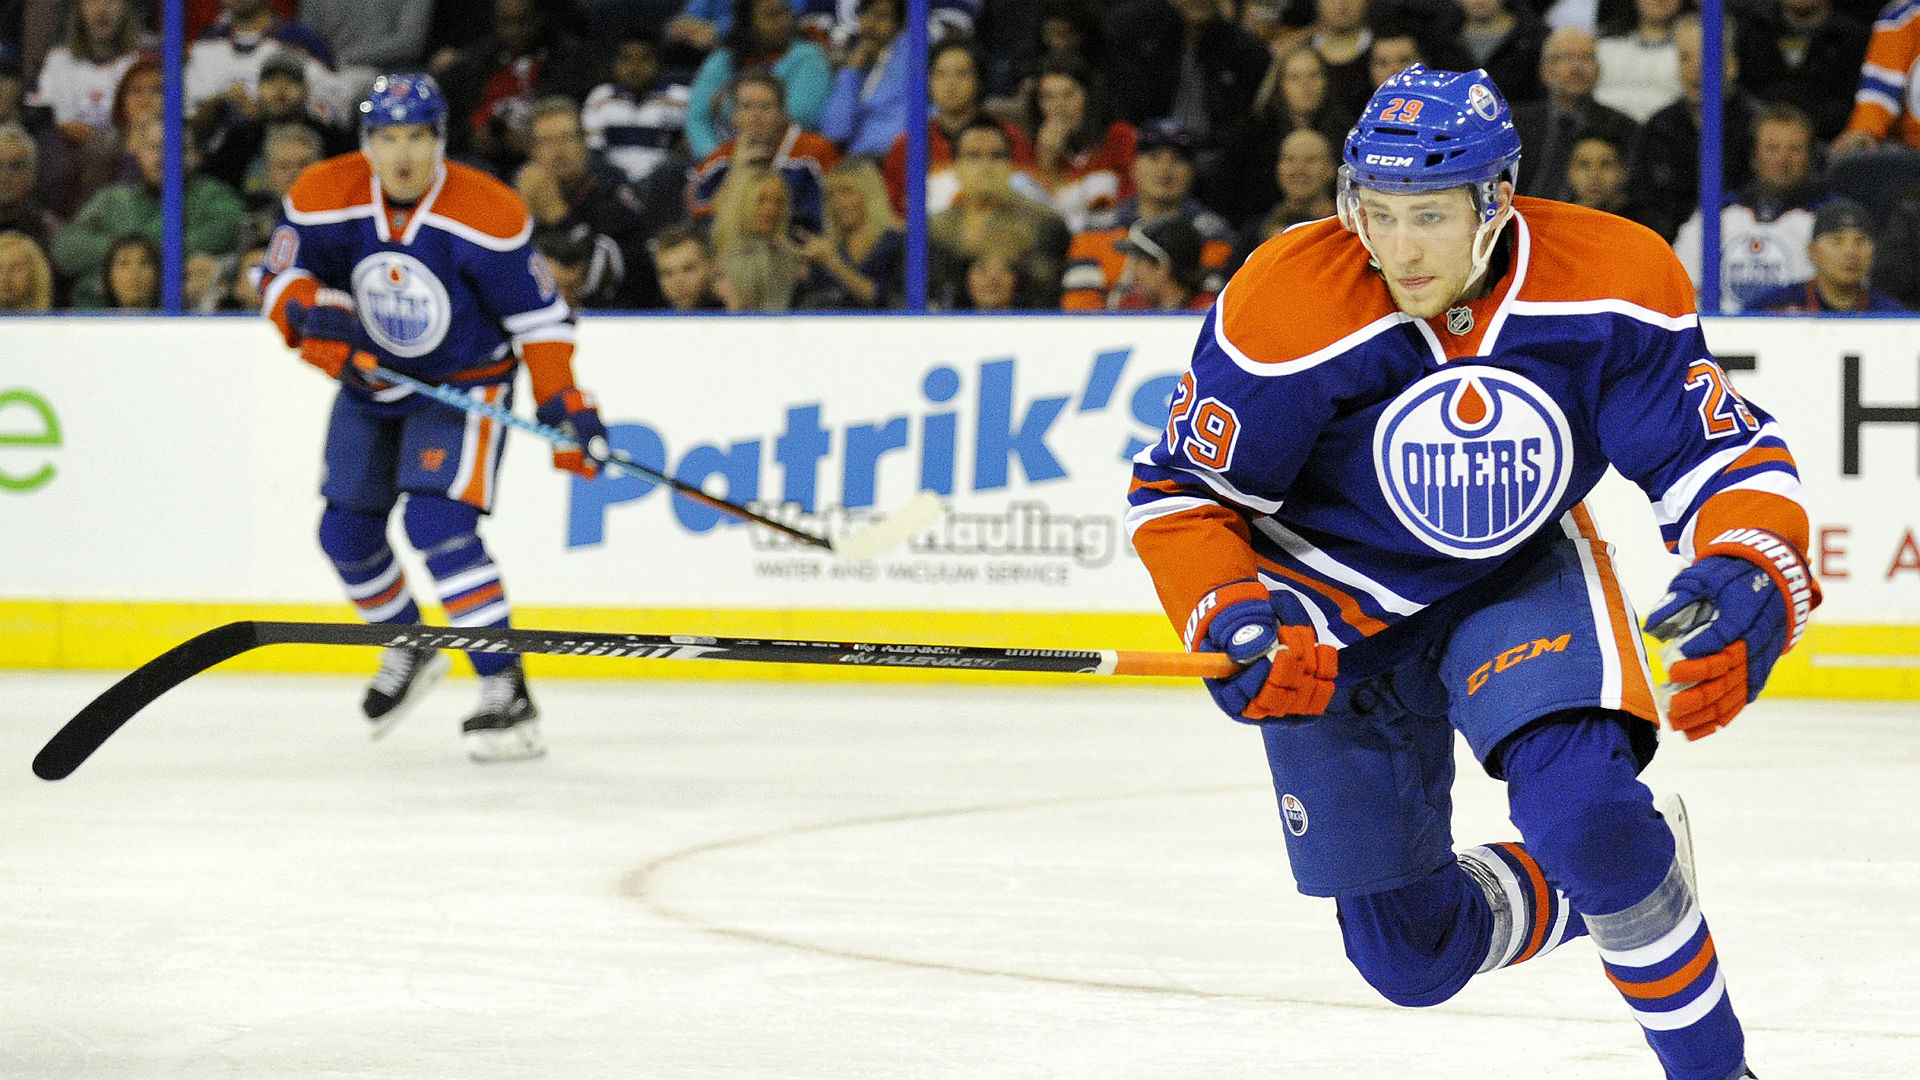 Edmonton Oilers: Leon Draisaitl Signs 8 Year $68 Million Deal